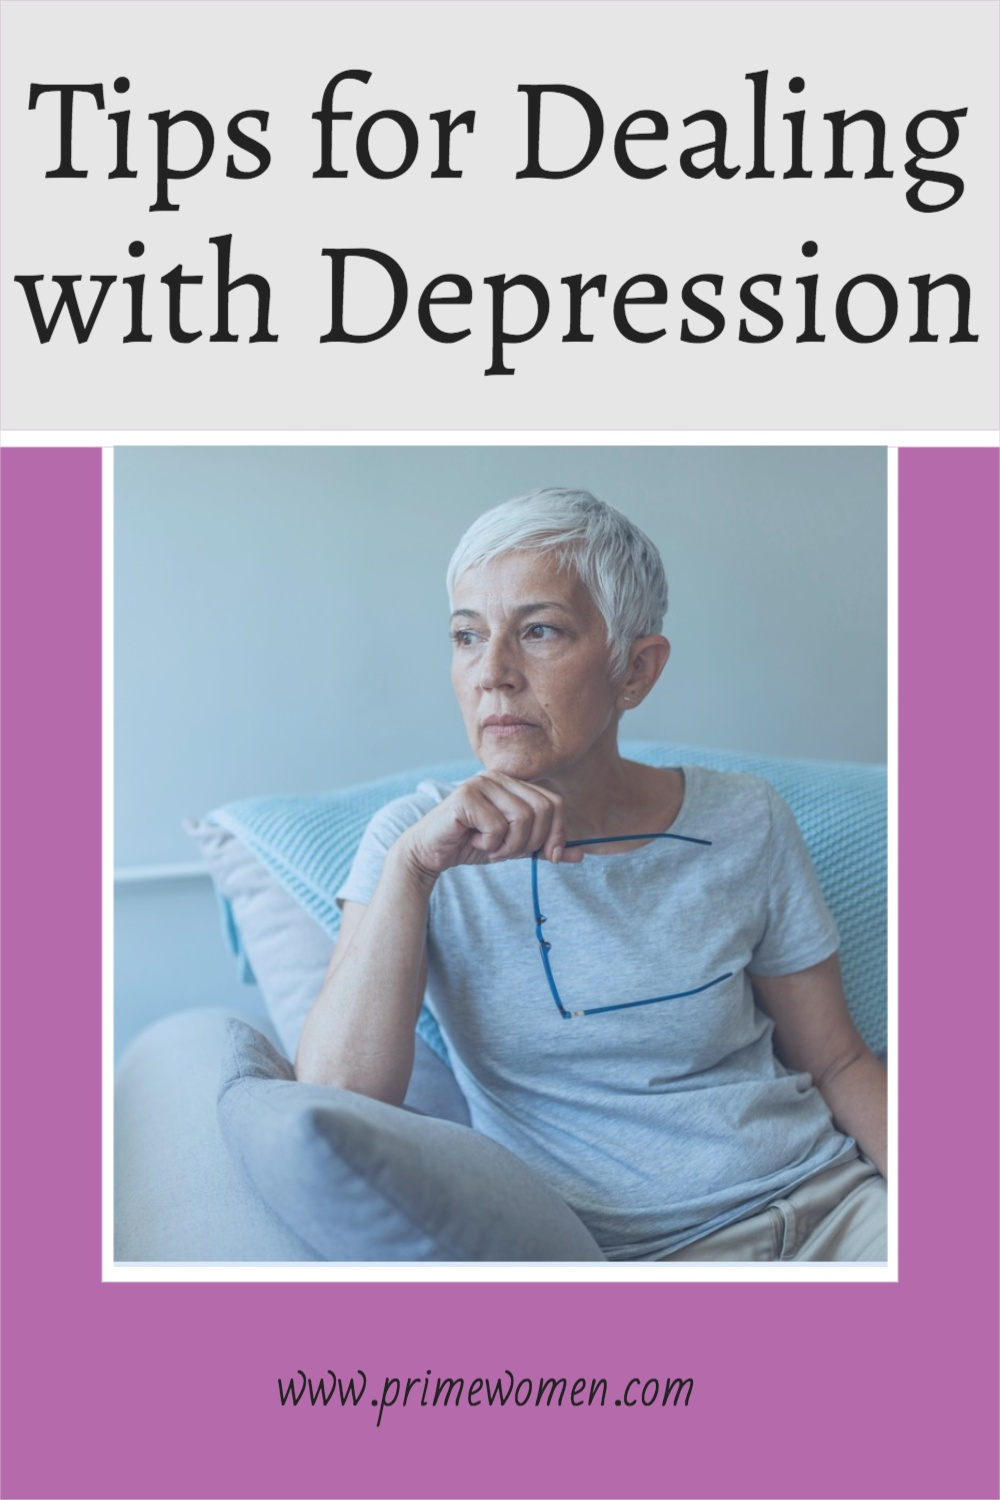 Tips-for-Dealing-with-Depression